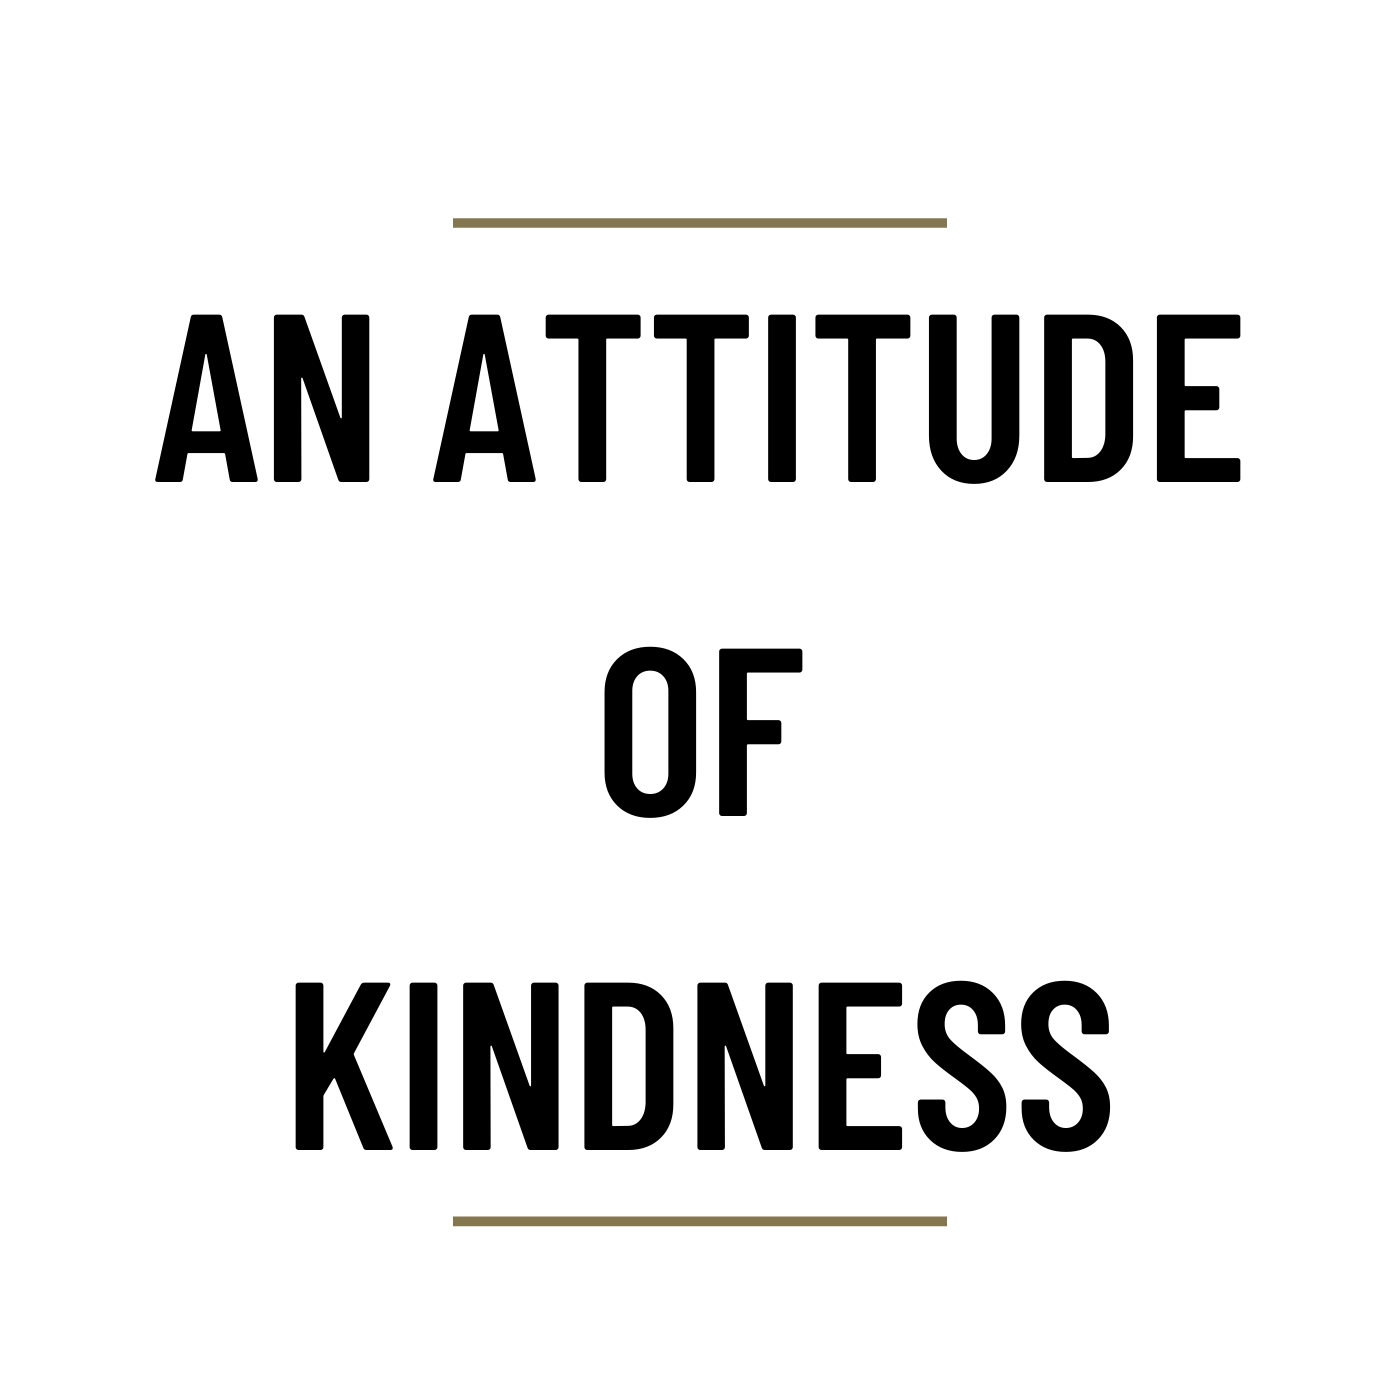 MS75 - An attitude of Kindness